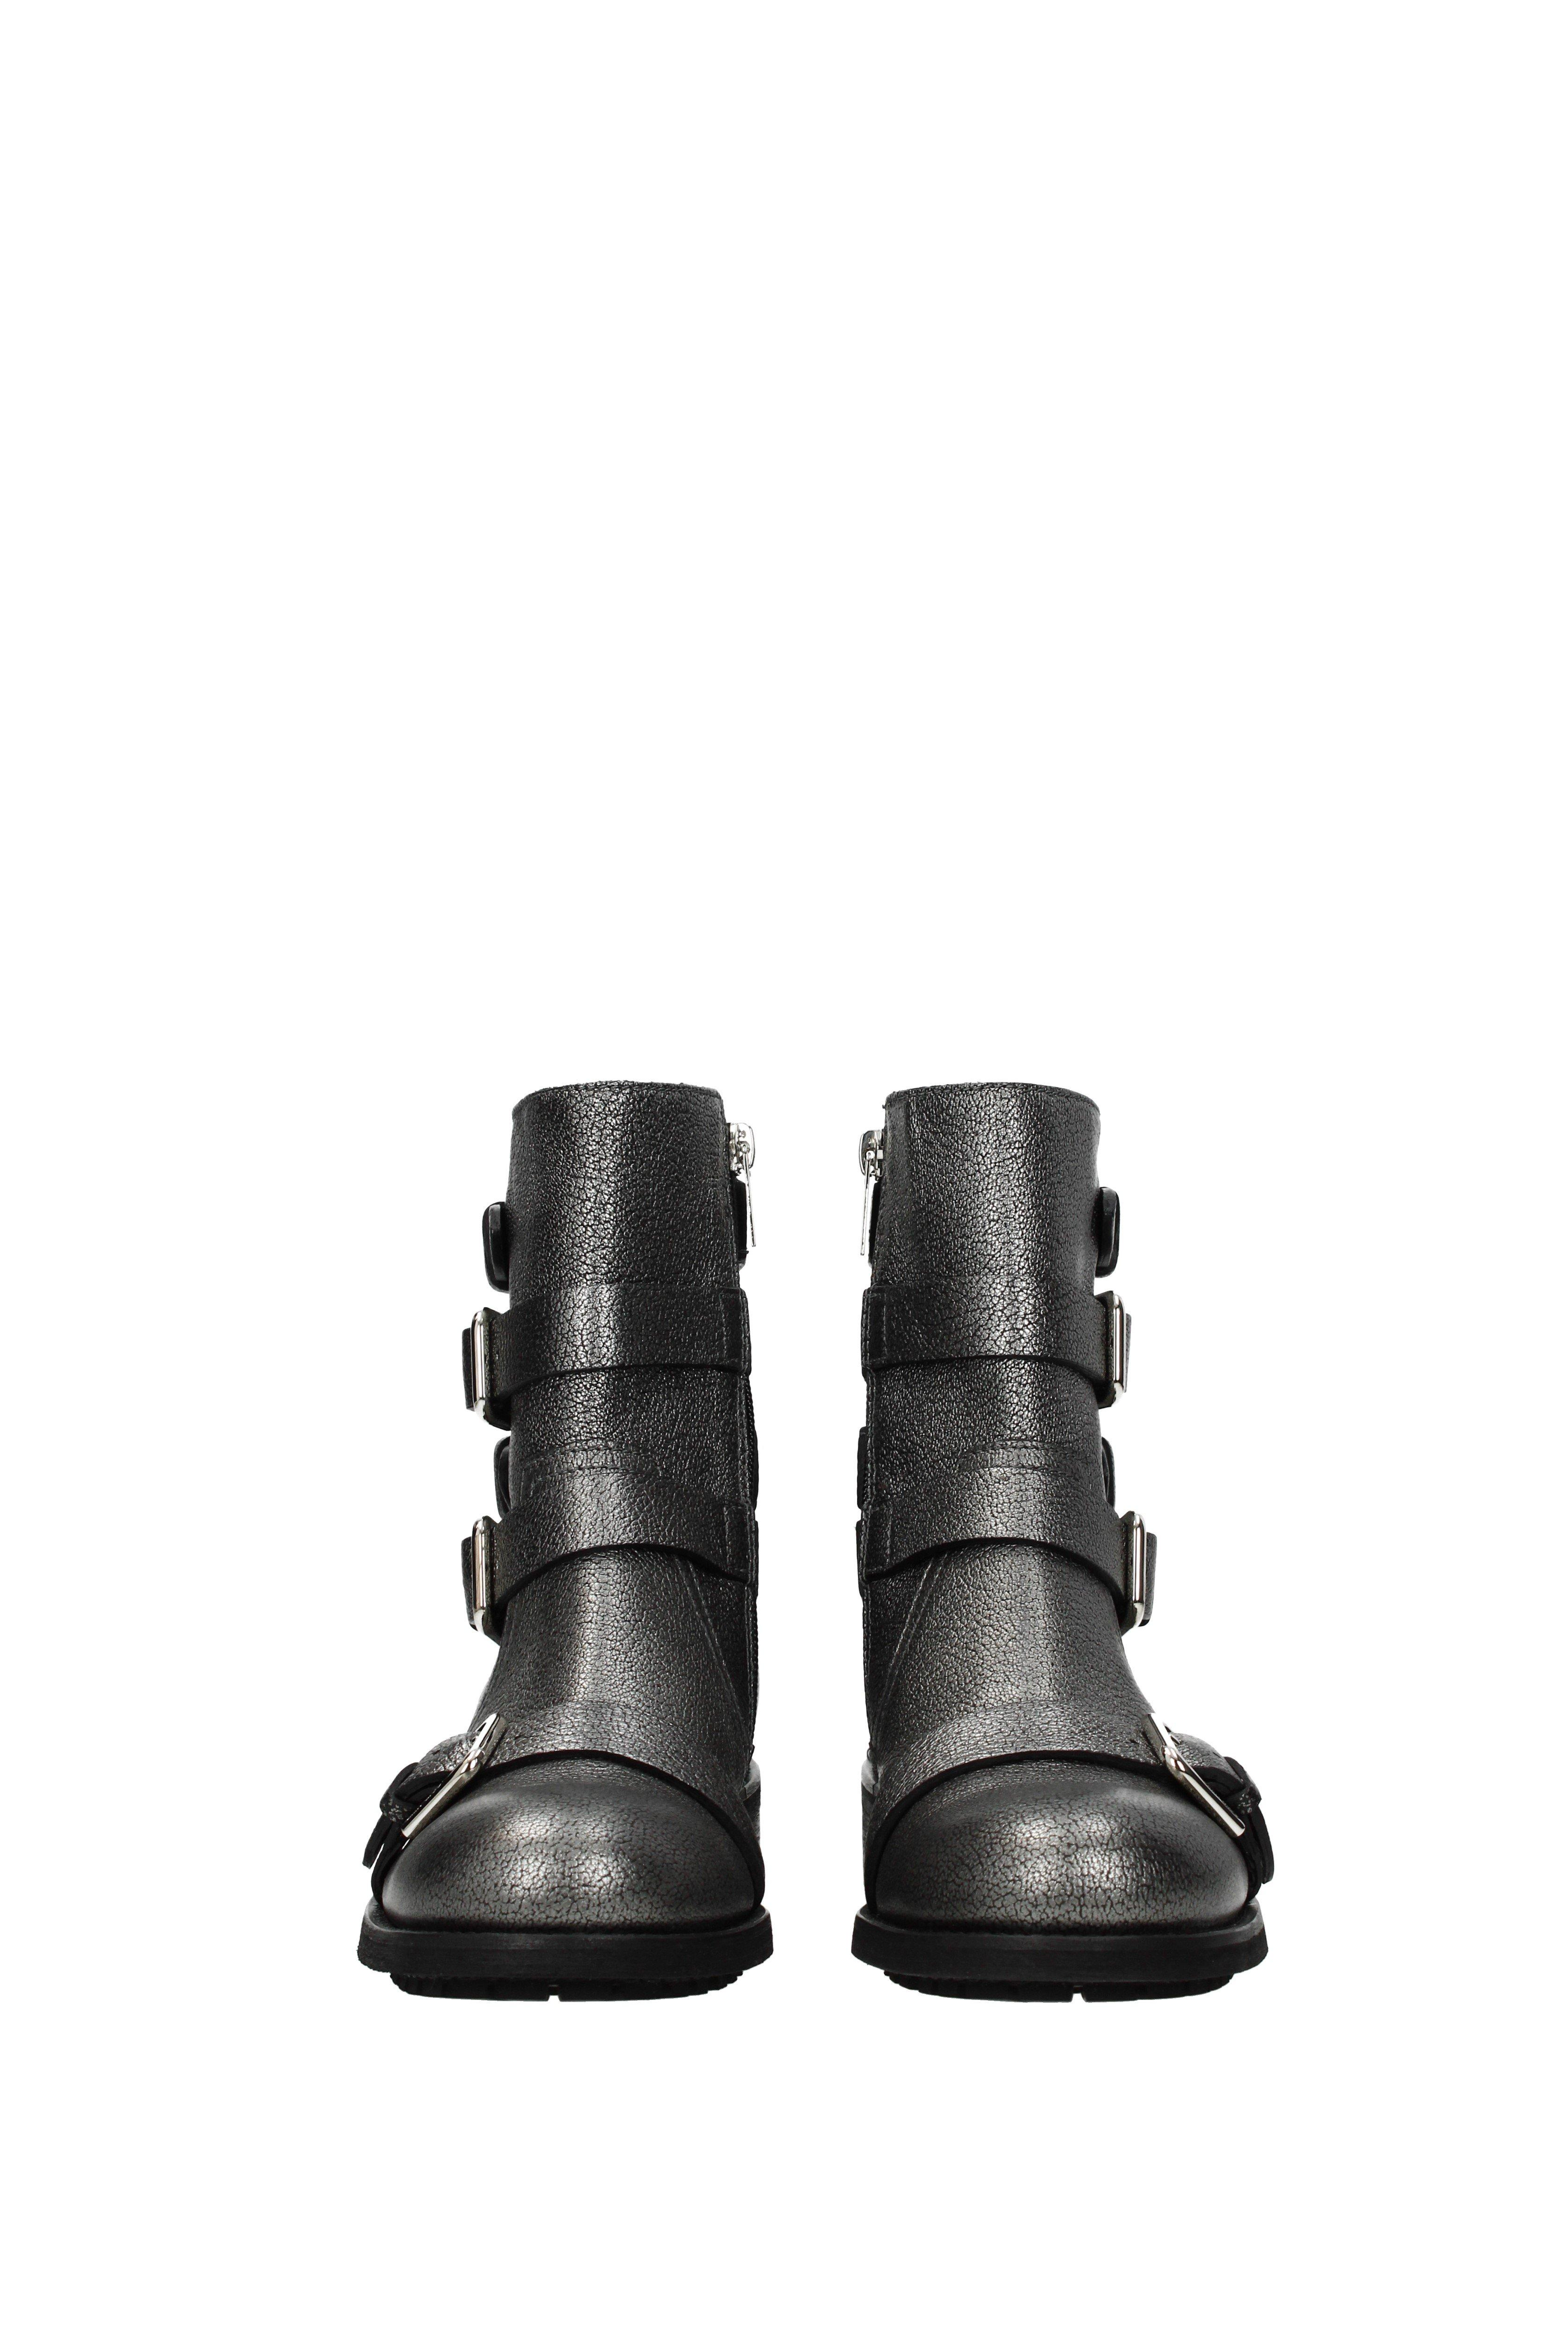 d2b4e290b4 Jimmy Choo - Black Ankle Boots Dawson Women Gray - Lyst. View fullscreen